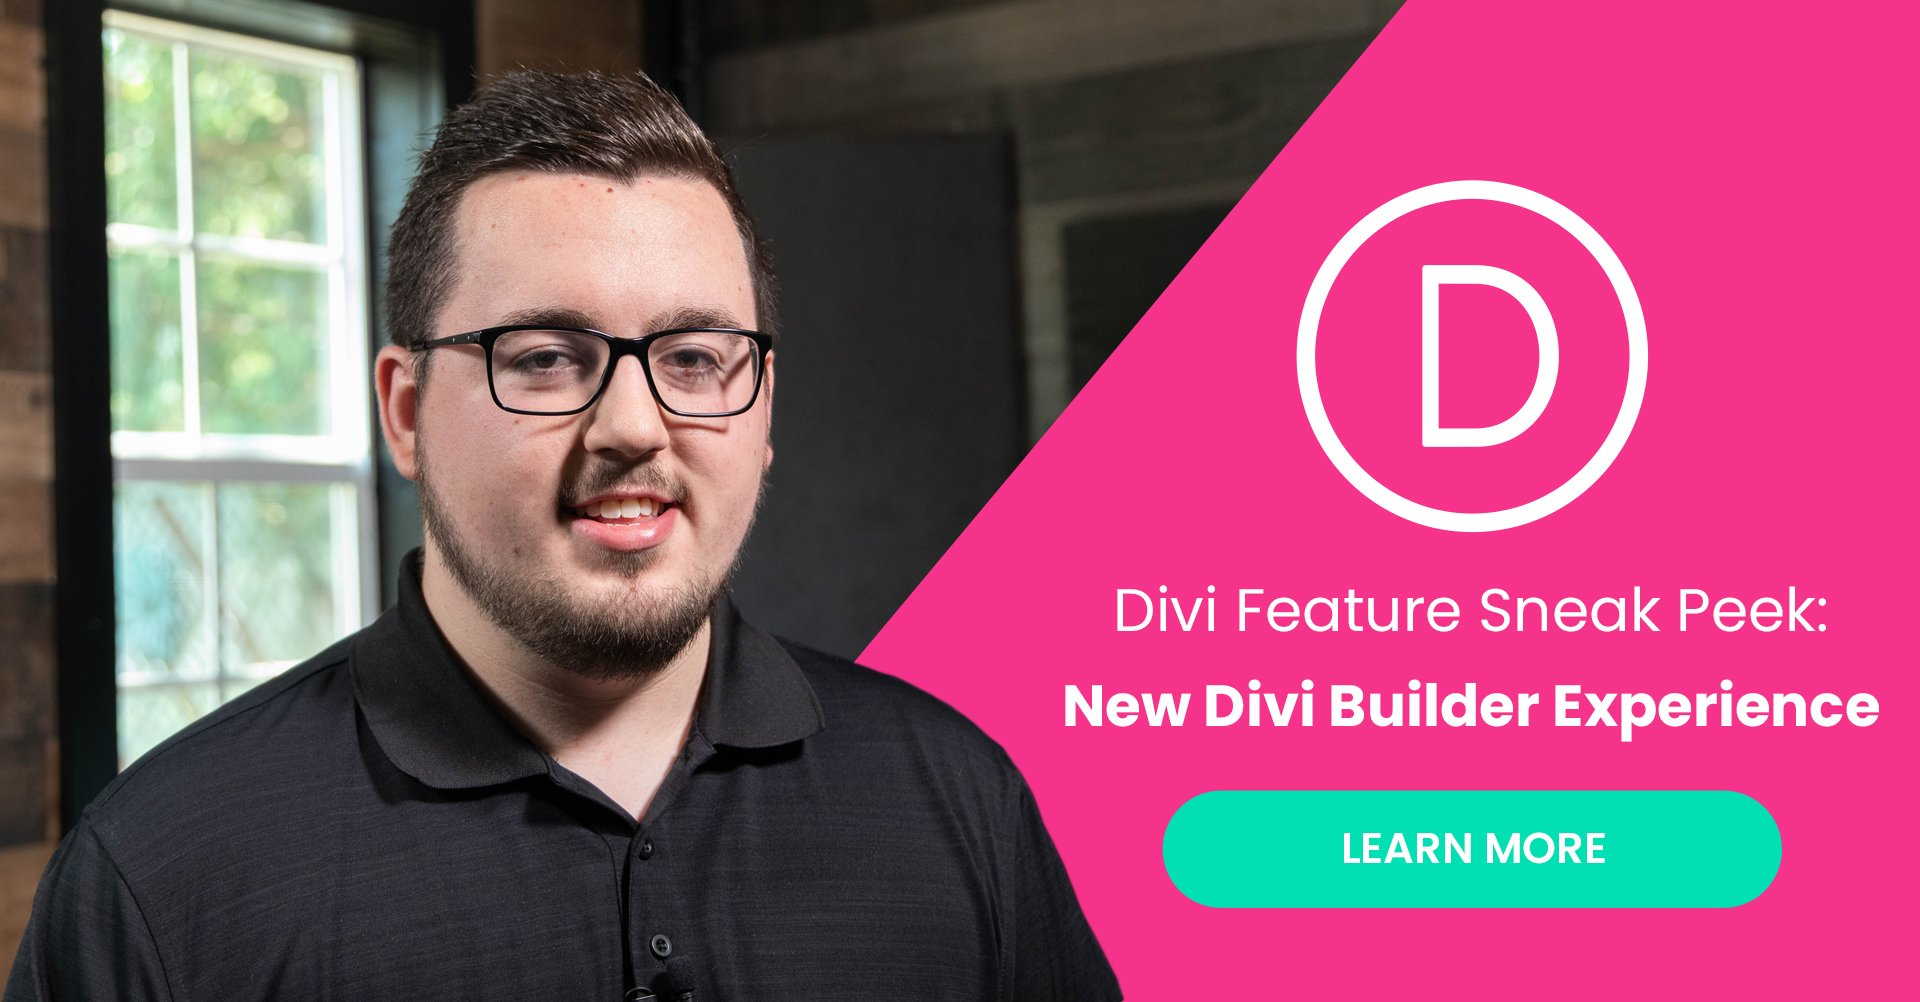 Divi Feature Sneak Peek: A New Divi Builder Experience is Coming!